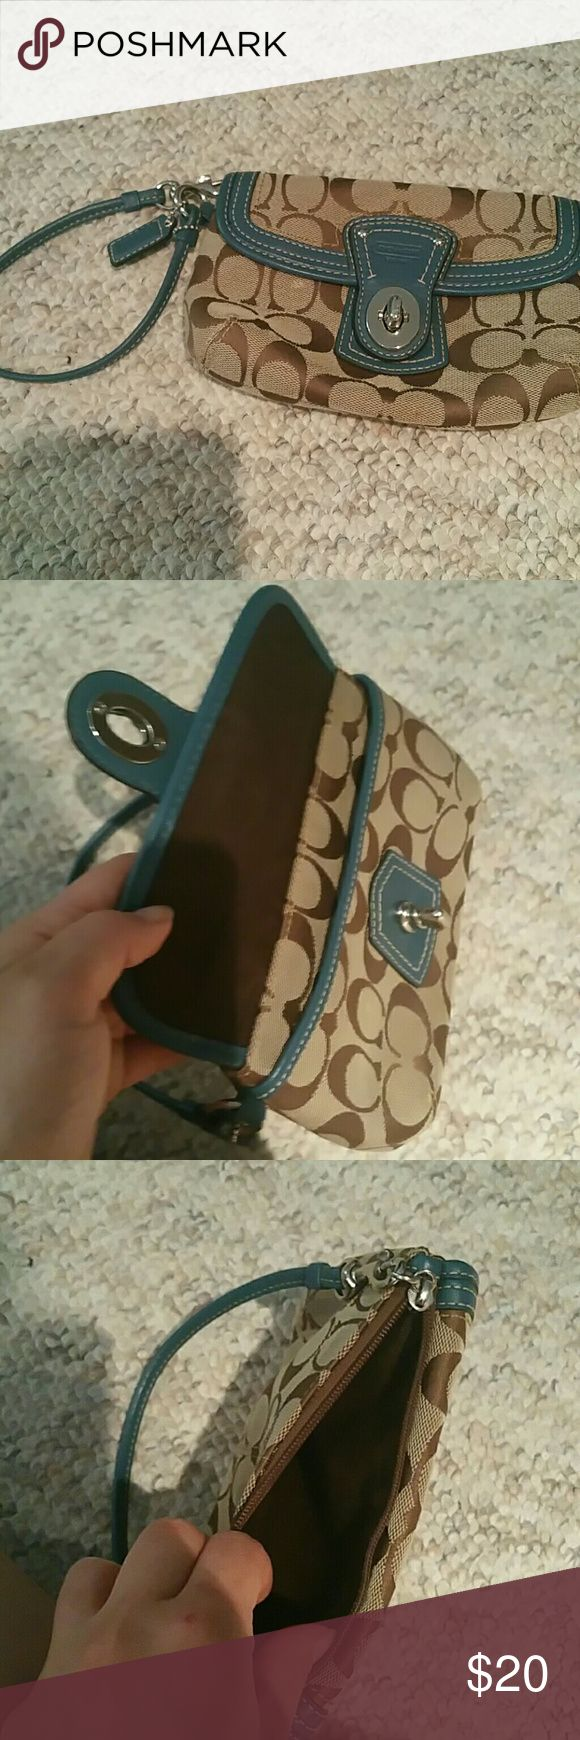 Coach clutch Barely used coach clutch Coach Bags Clutches & Wristlets